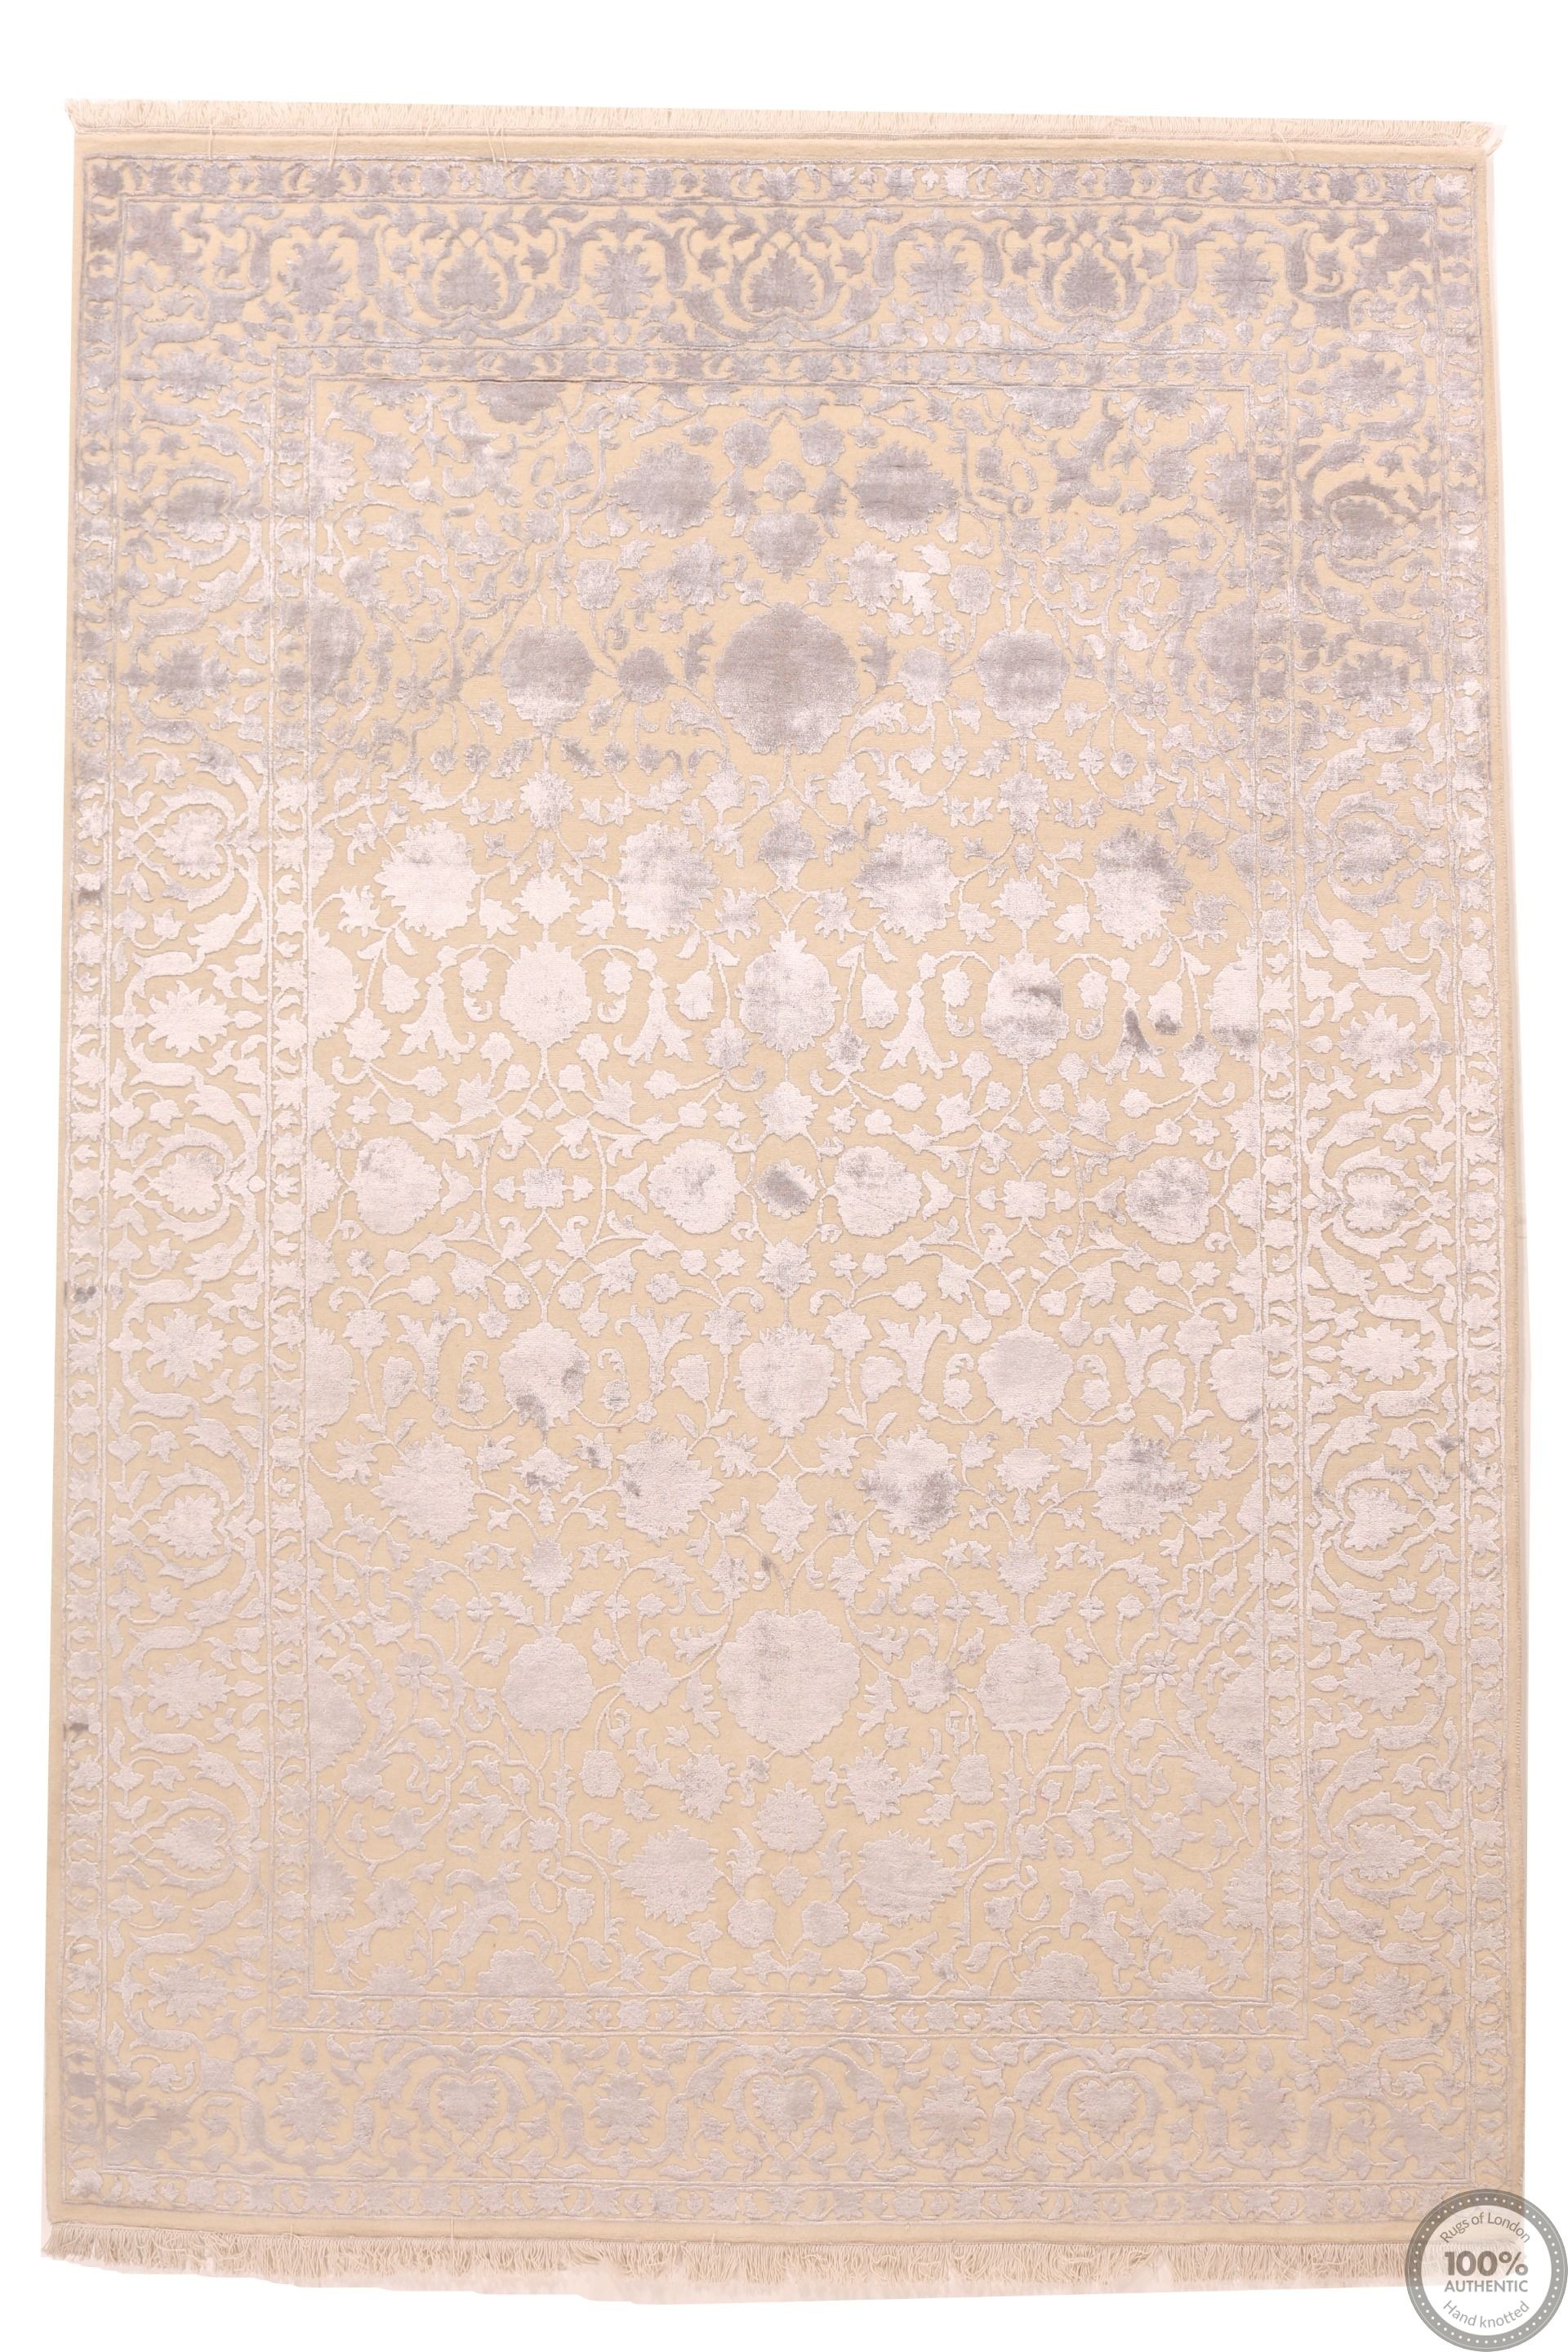 Keshan design contemporary Indian rug beige and light silver